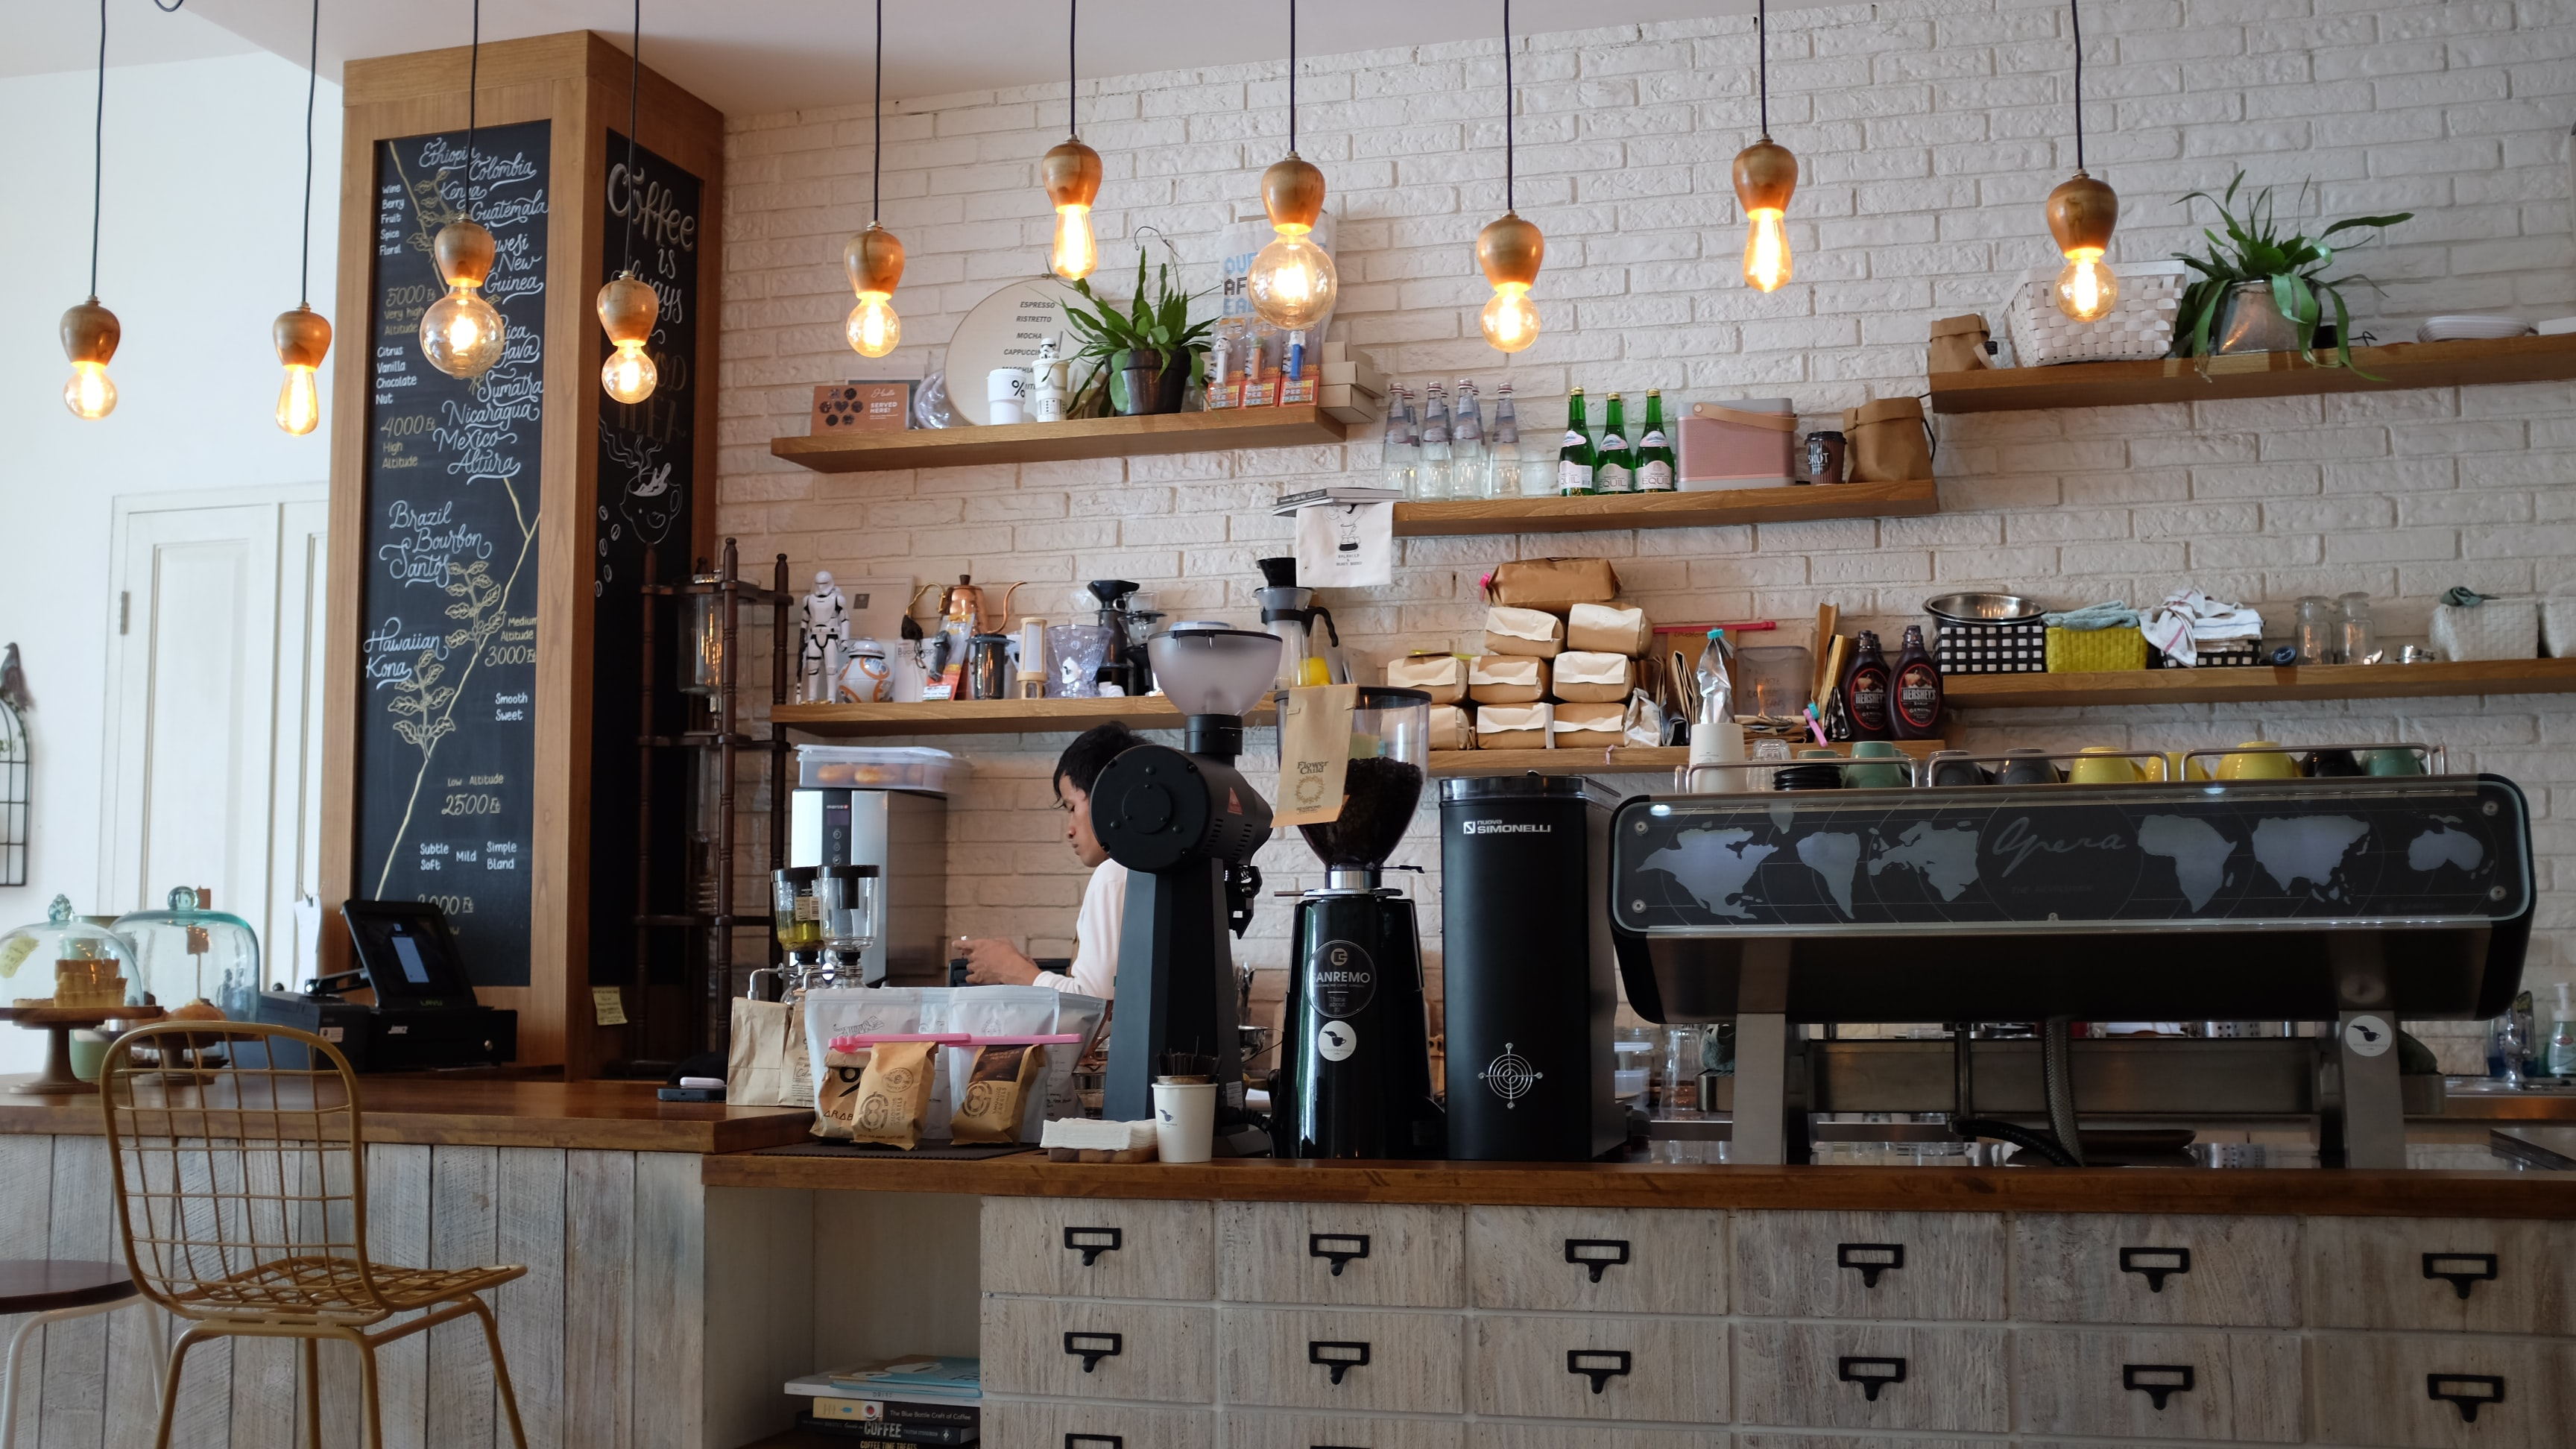 Top 5 best coffee shops in Barcelona that a coffee lover shouldn't miss